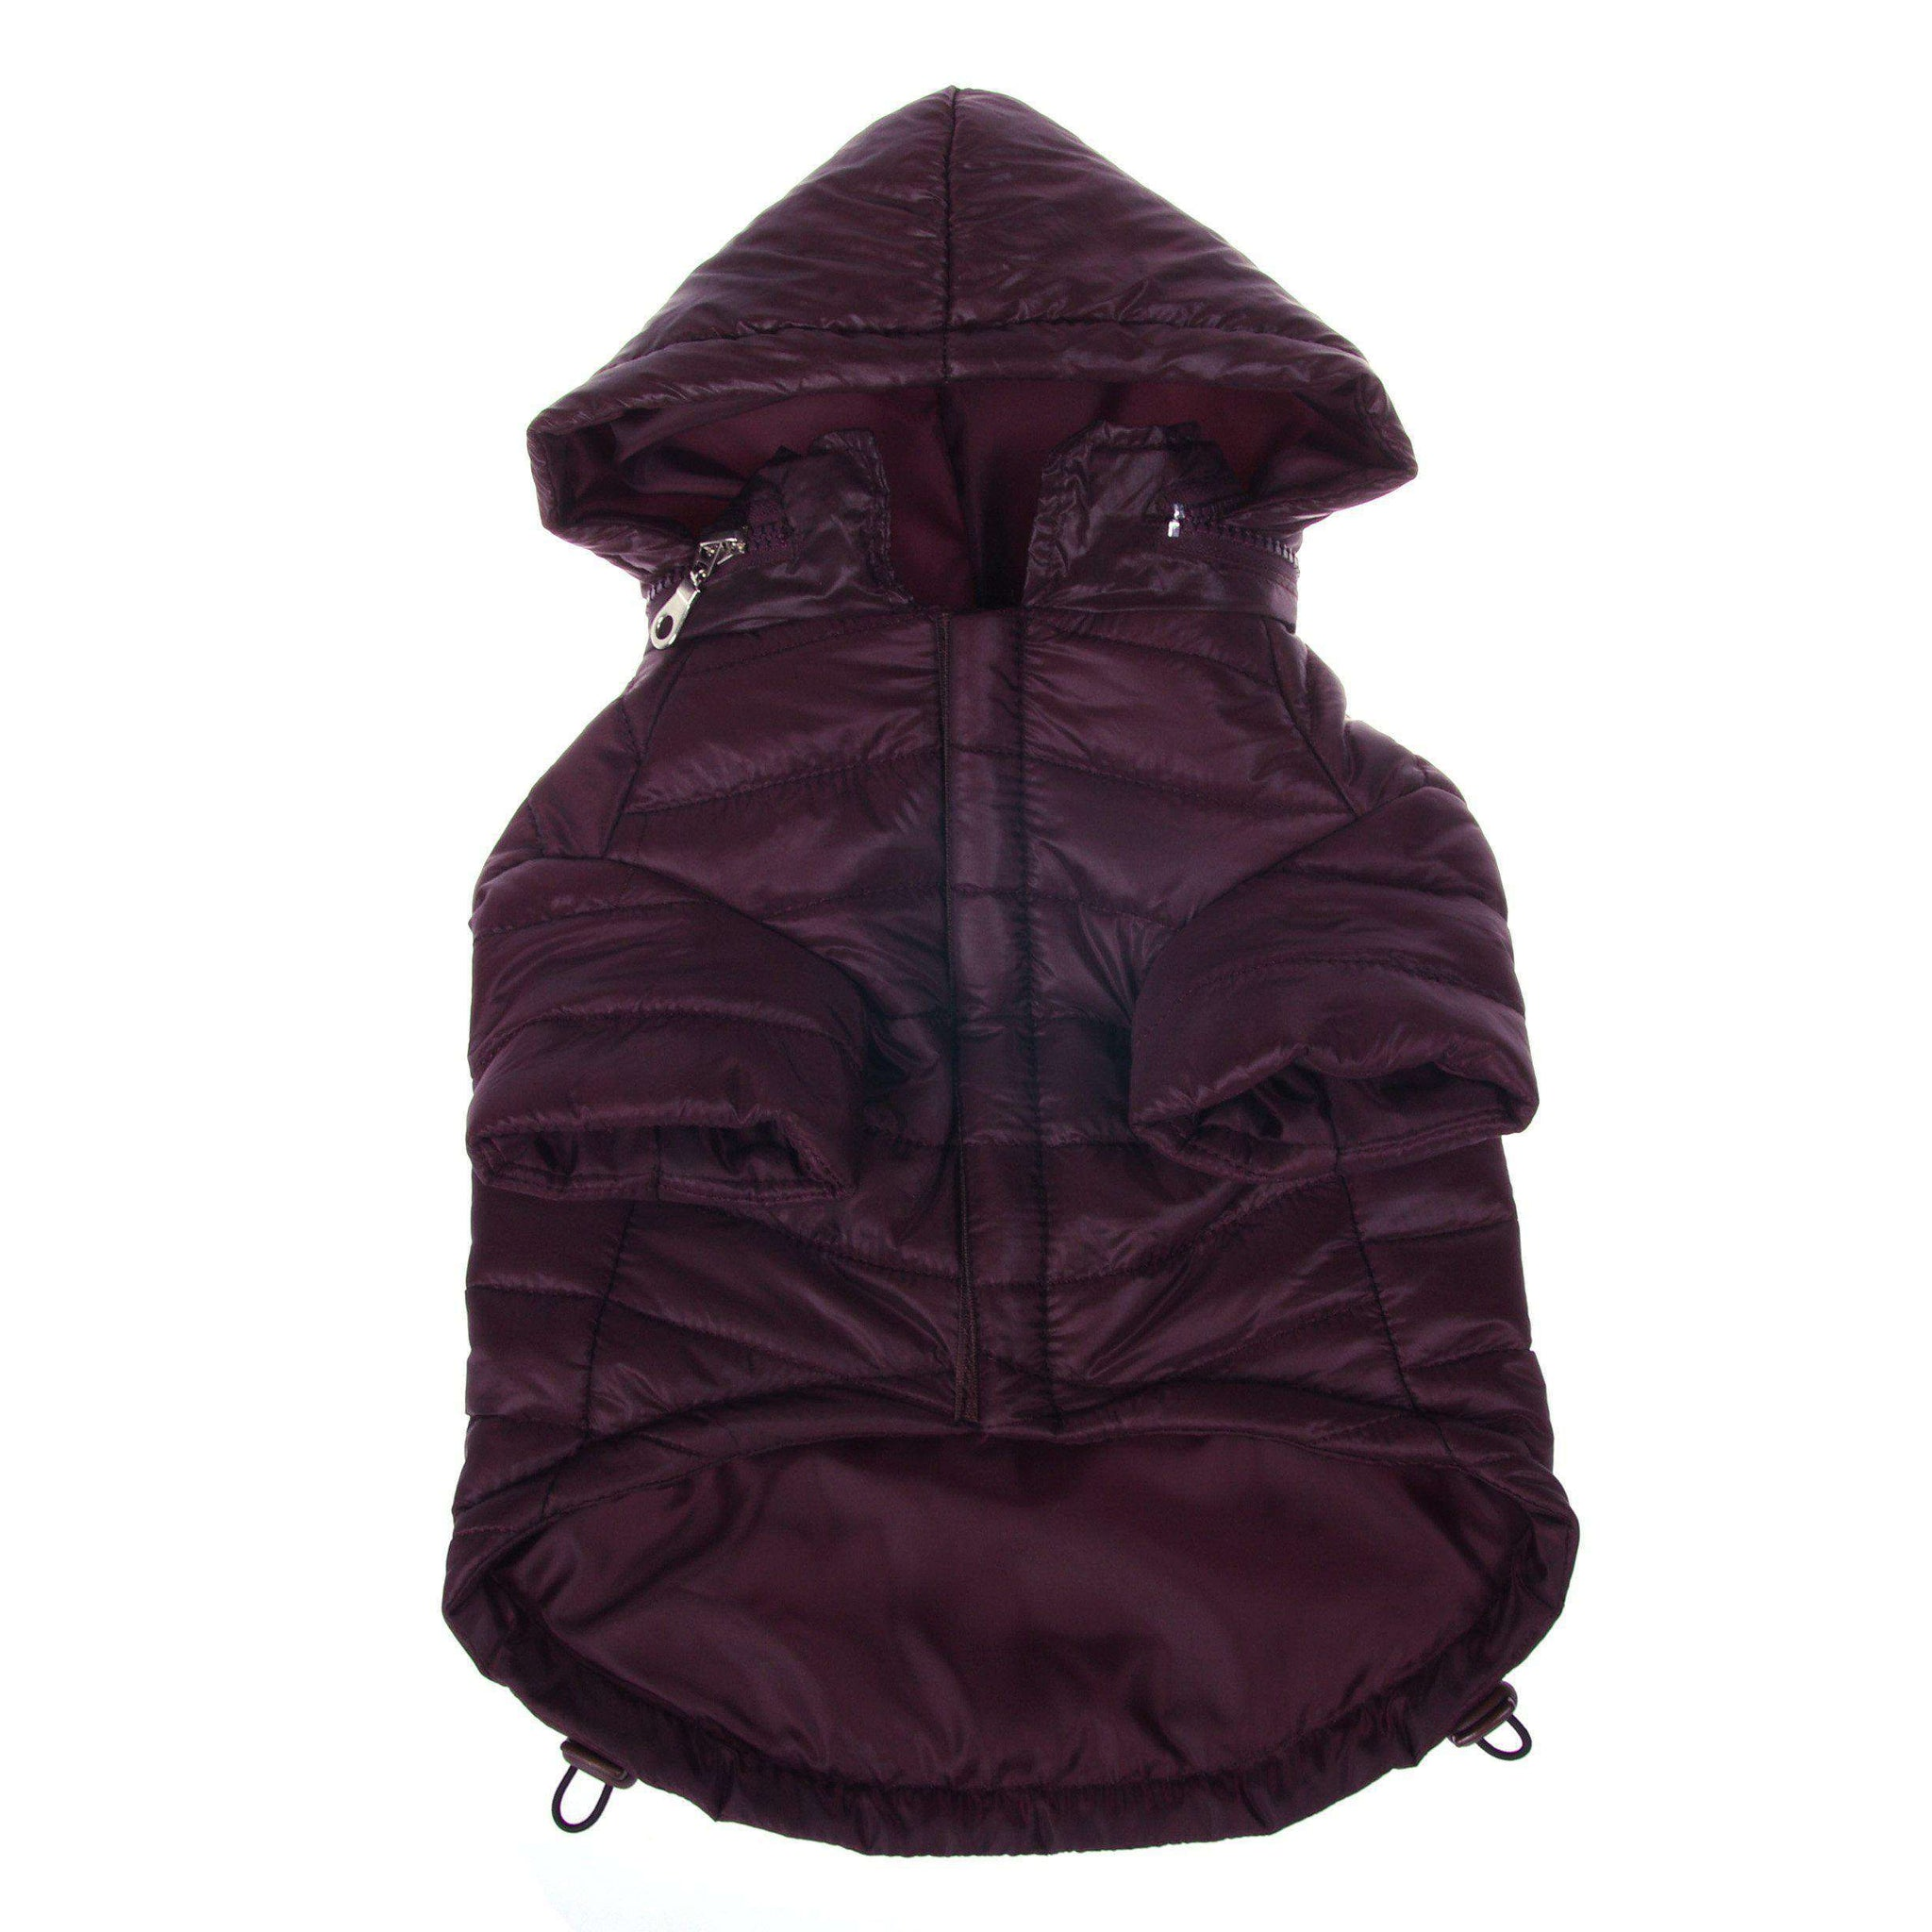 Lightweight Adjustable 'Sporty Avalanche' Pet Coat - Dark Cocoa Brown-Pet Life-DirtyFurClothing